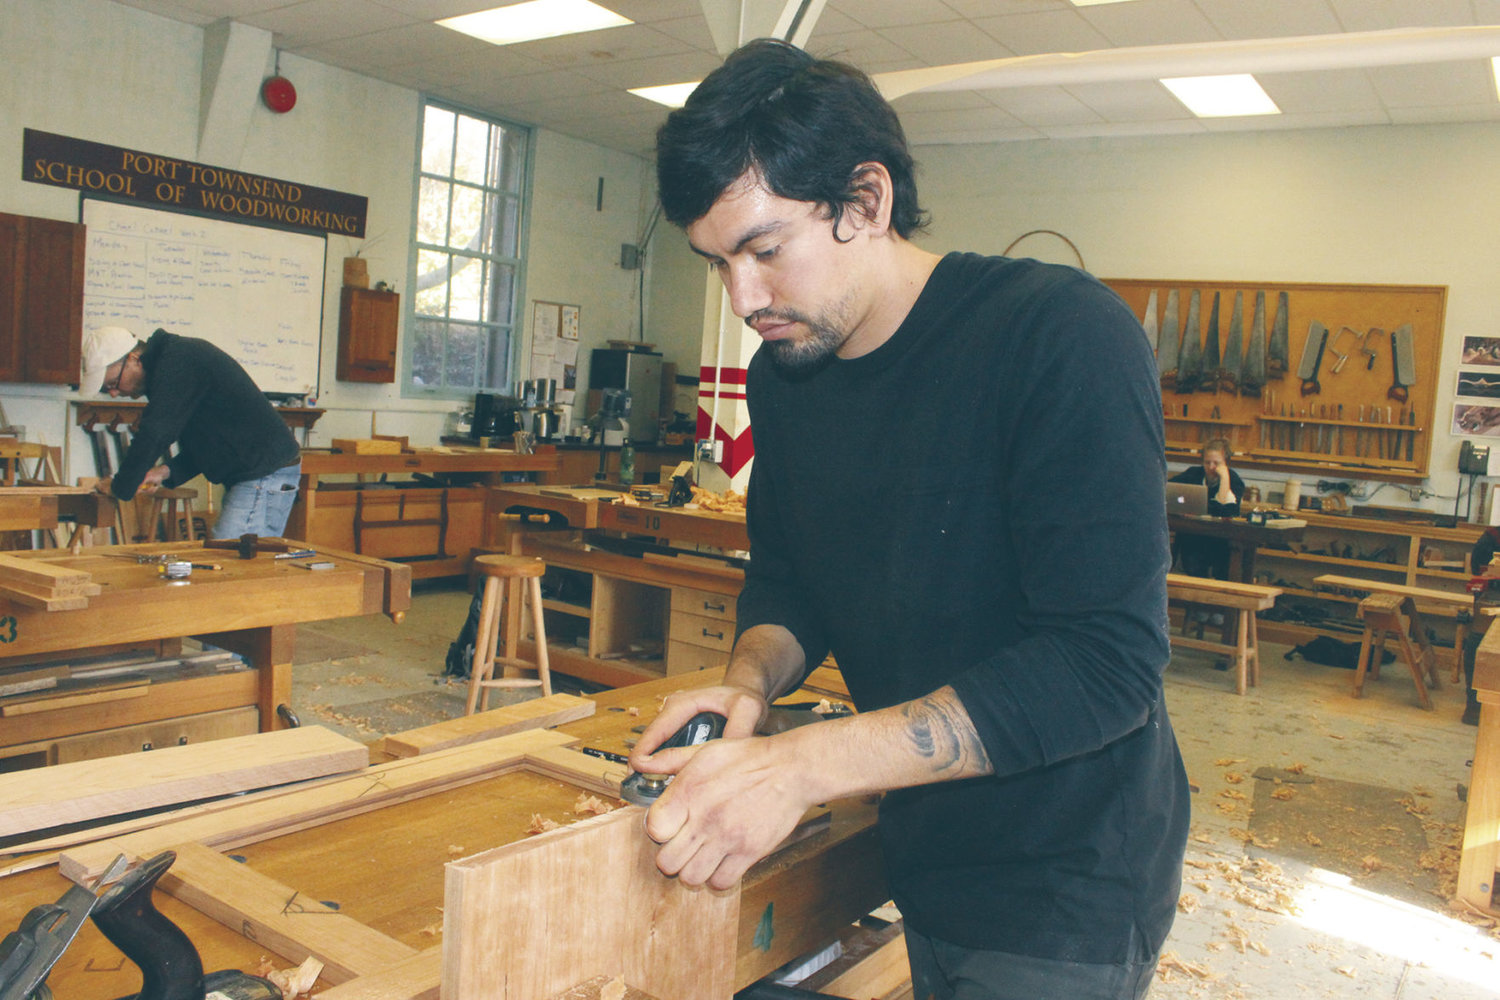 Woodworking School Enrolls A First Port Townsend Leader